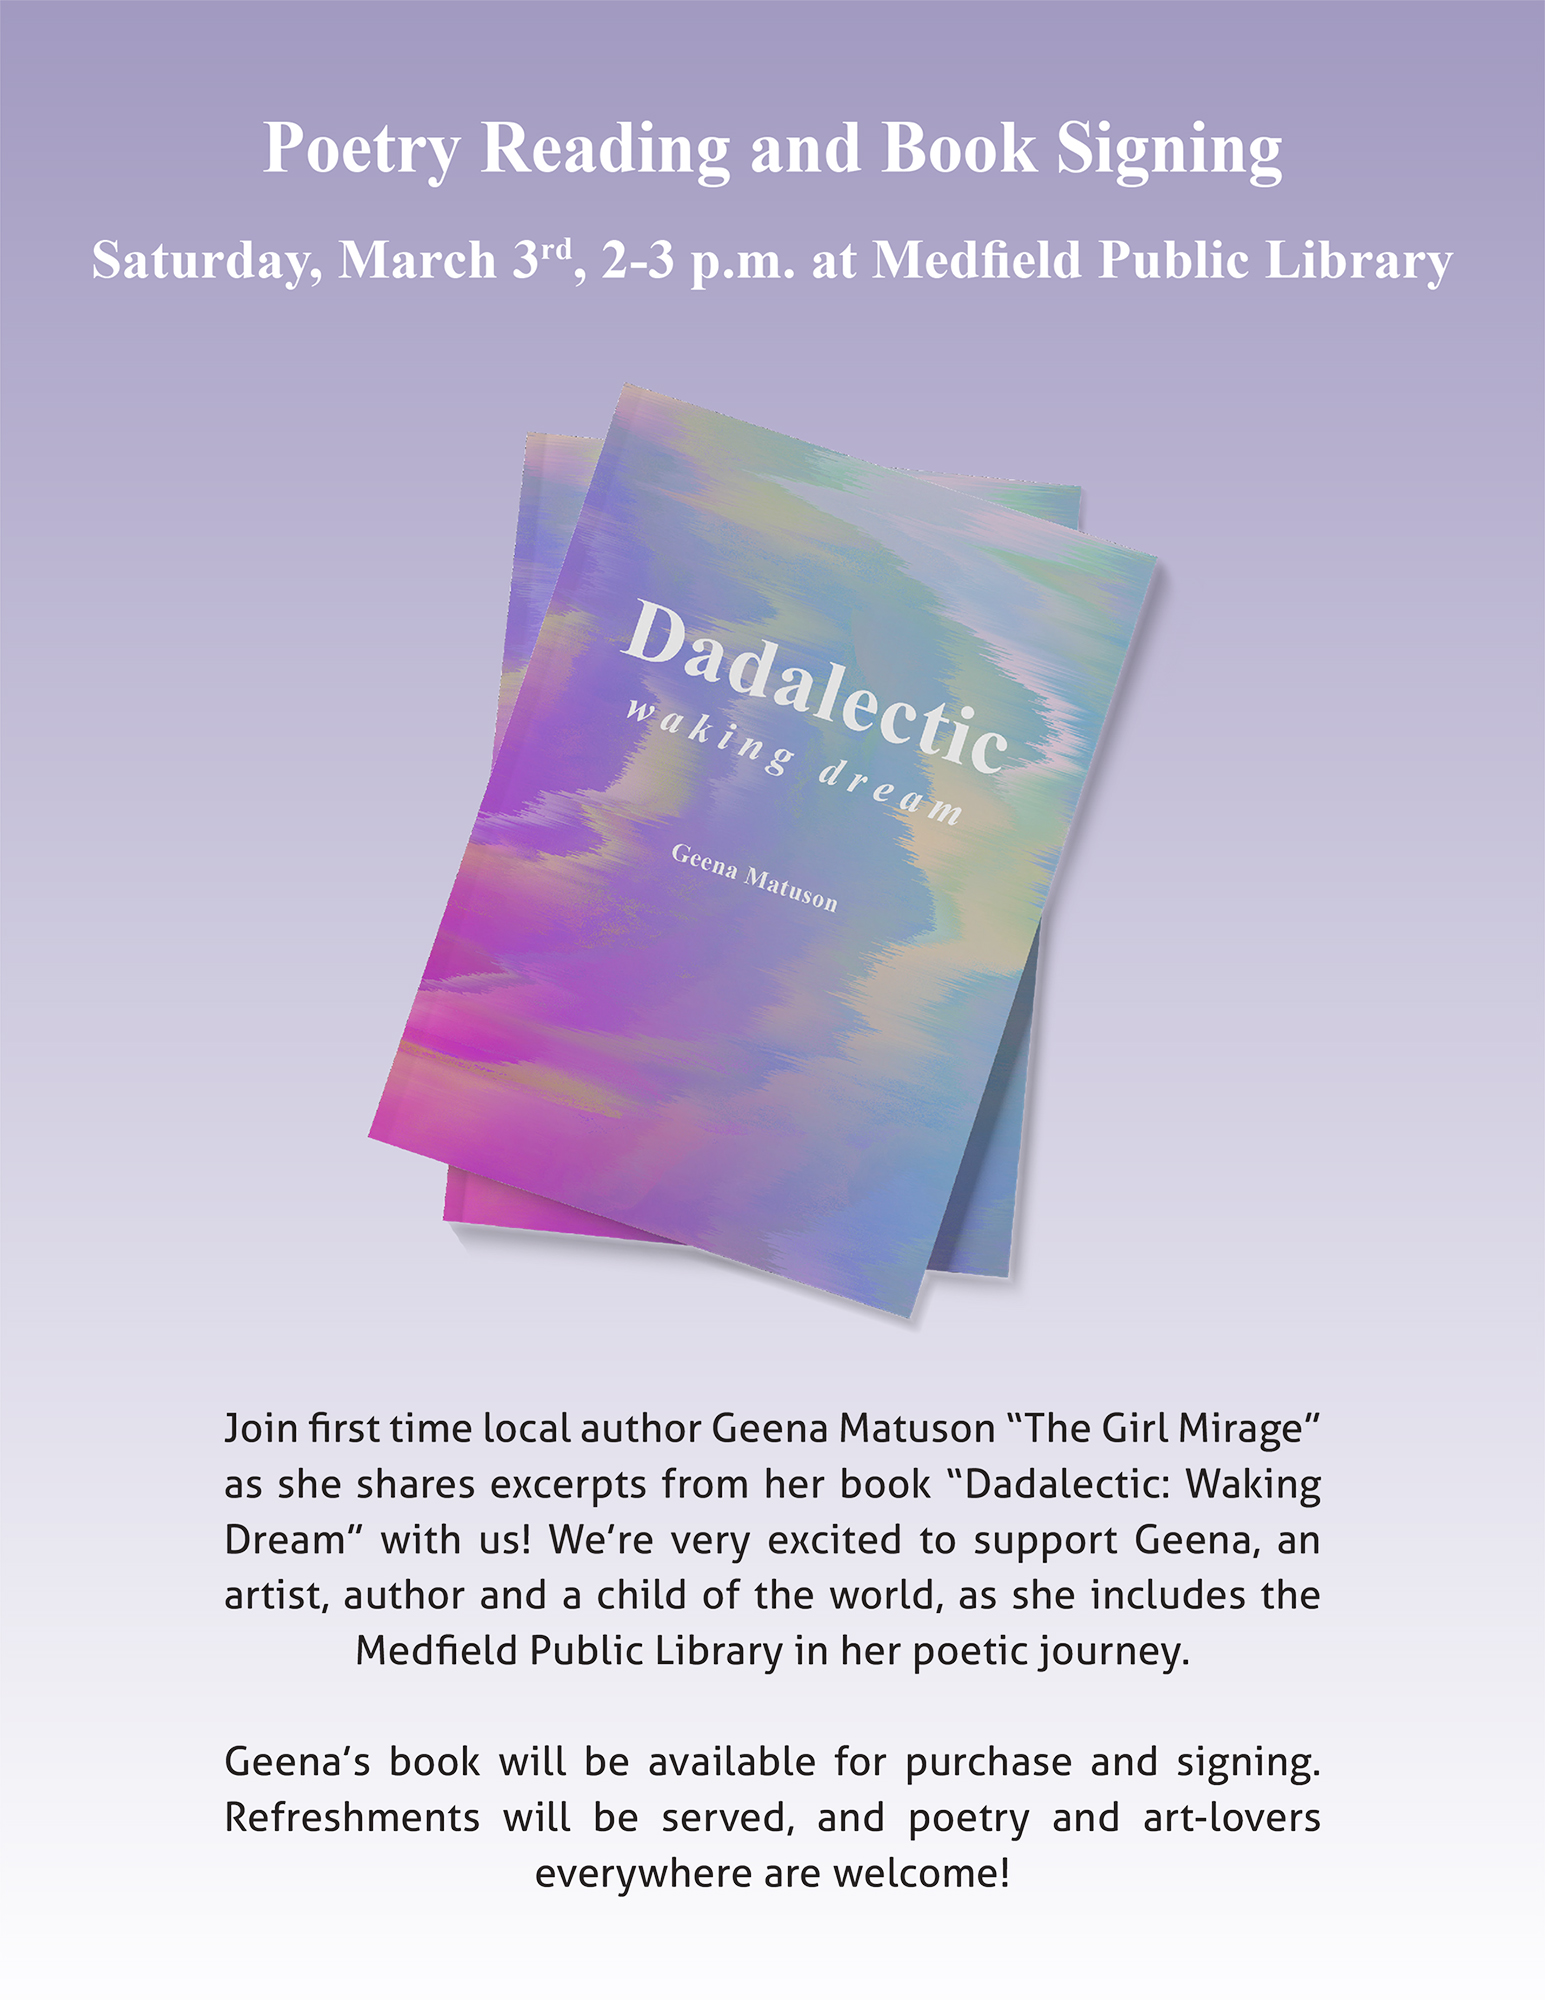 Geena Matuson appears for book reading and signing for first book 'Dadalectic' at Medfield Public Library. See more @ http://dadalectic.com.